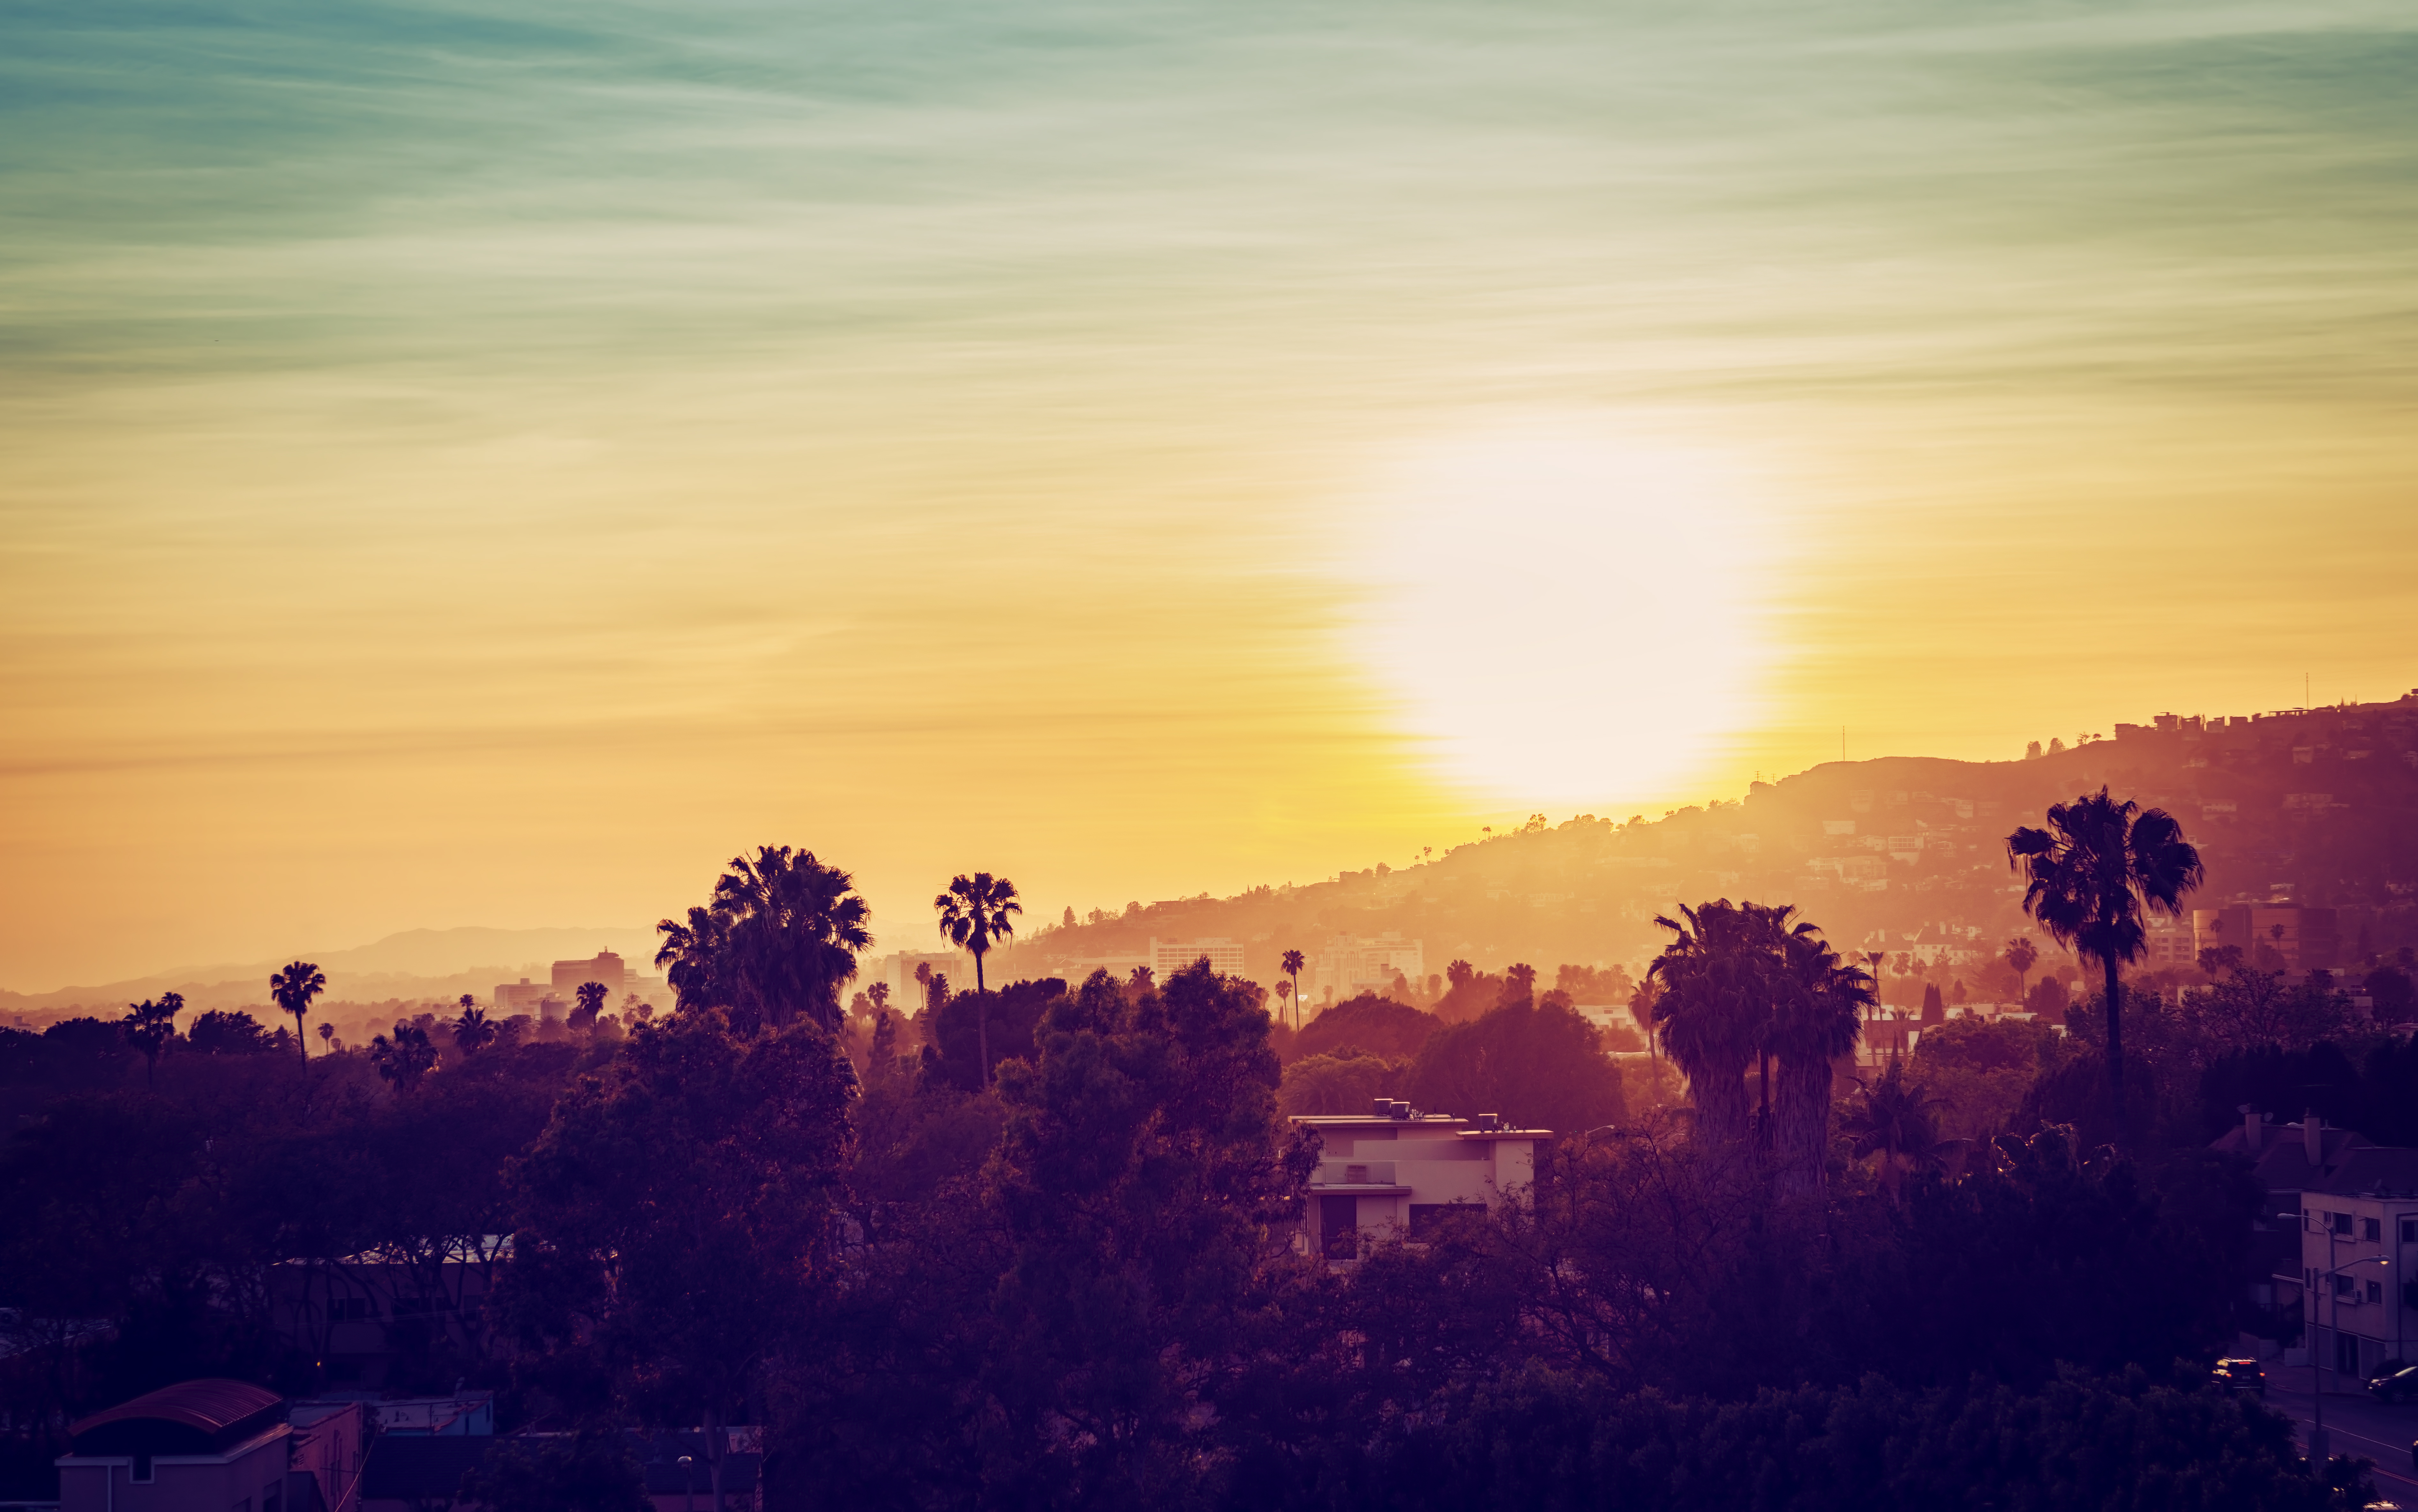 Los Angeles mountains with palm trees at sunset